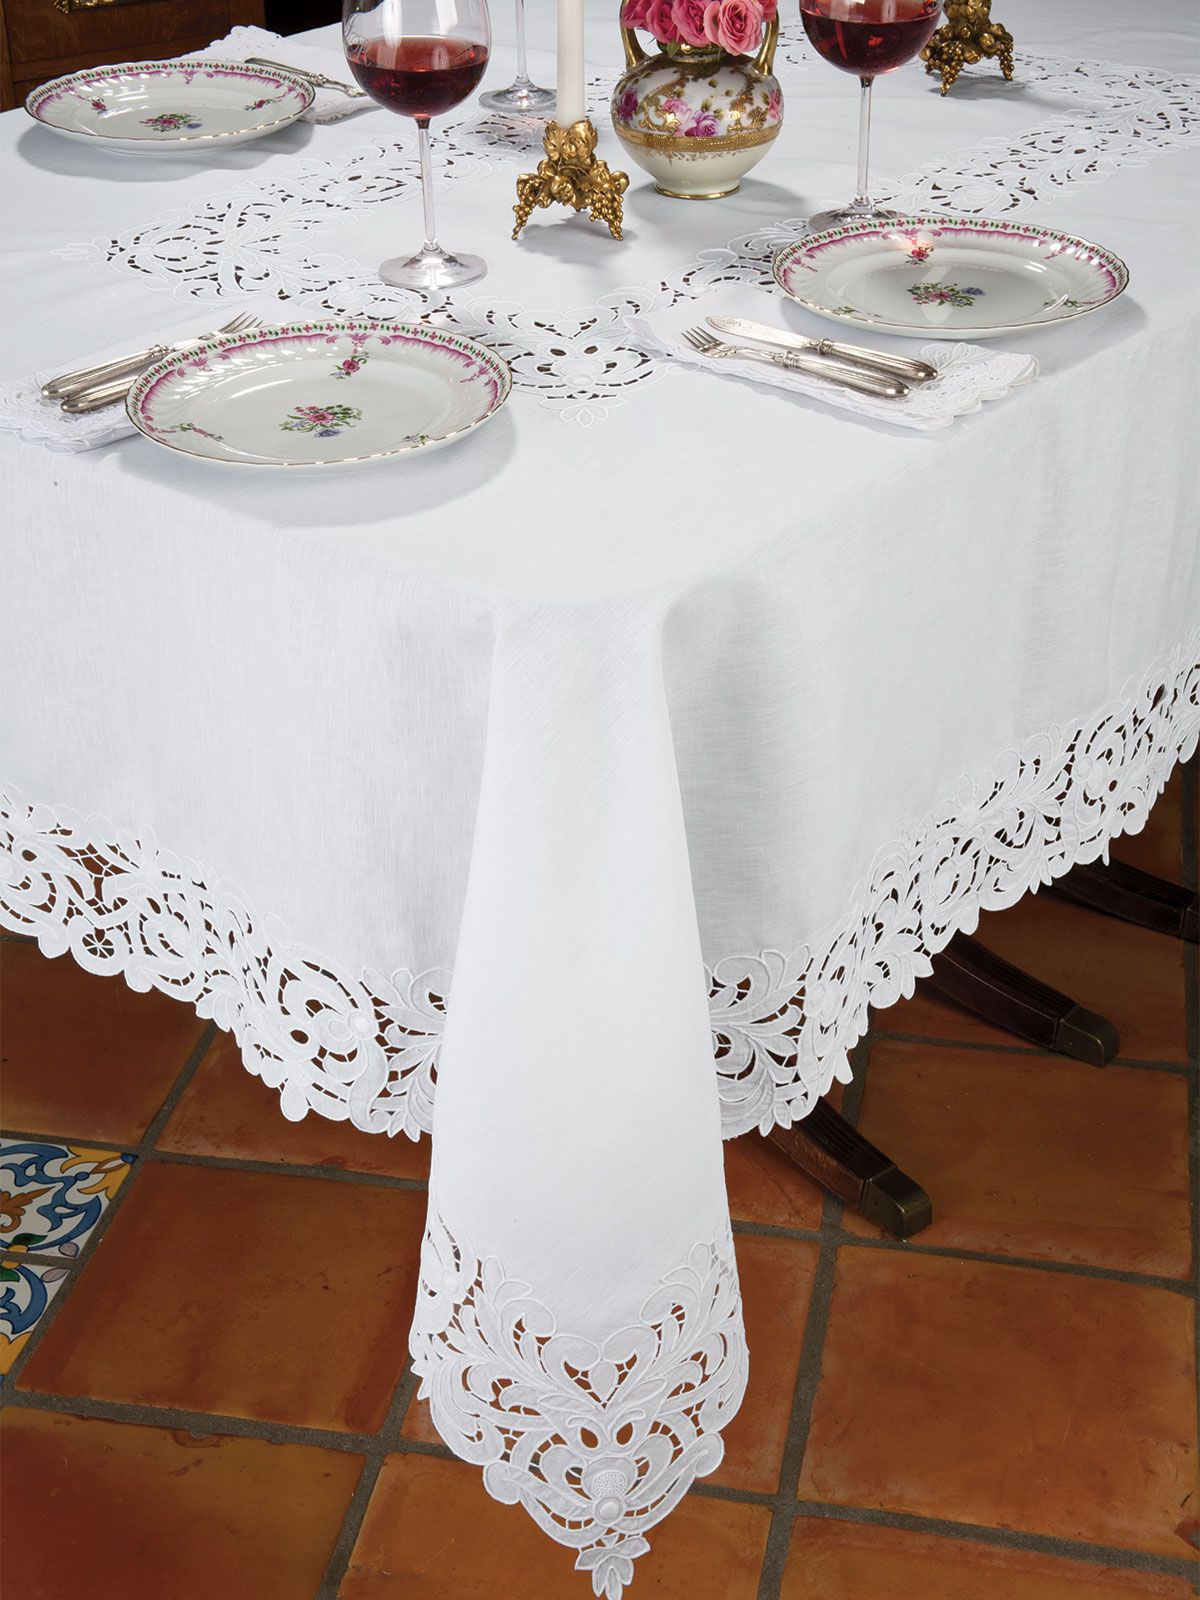 Splendor from the past, incredibly complex cutwork and hand embroidery on finest Italian linen creates a look of lavish luxury for your most elegant entertaining. Imported in majestic White on White tablecloths, placemats and napkins, all exhibit crafts­manship achieved only by skilled artisans